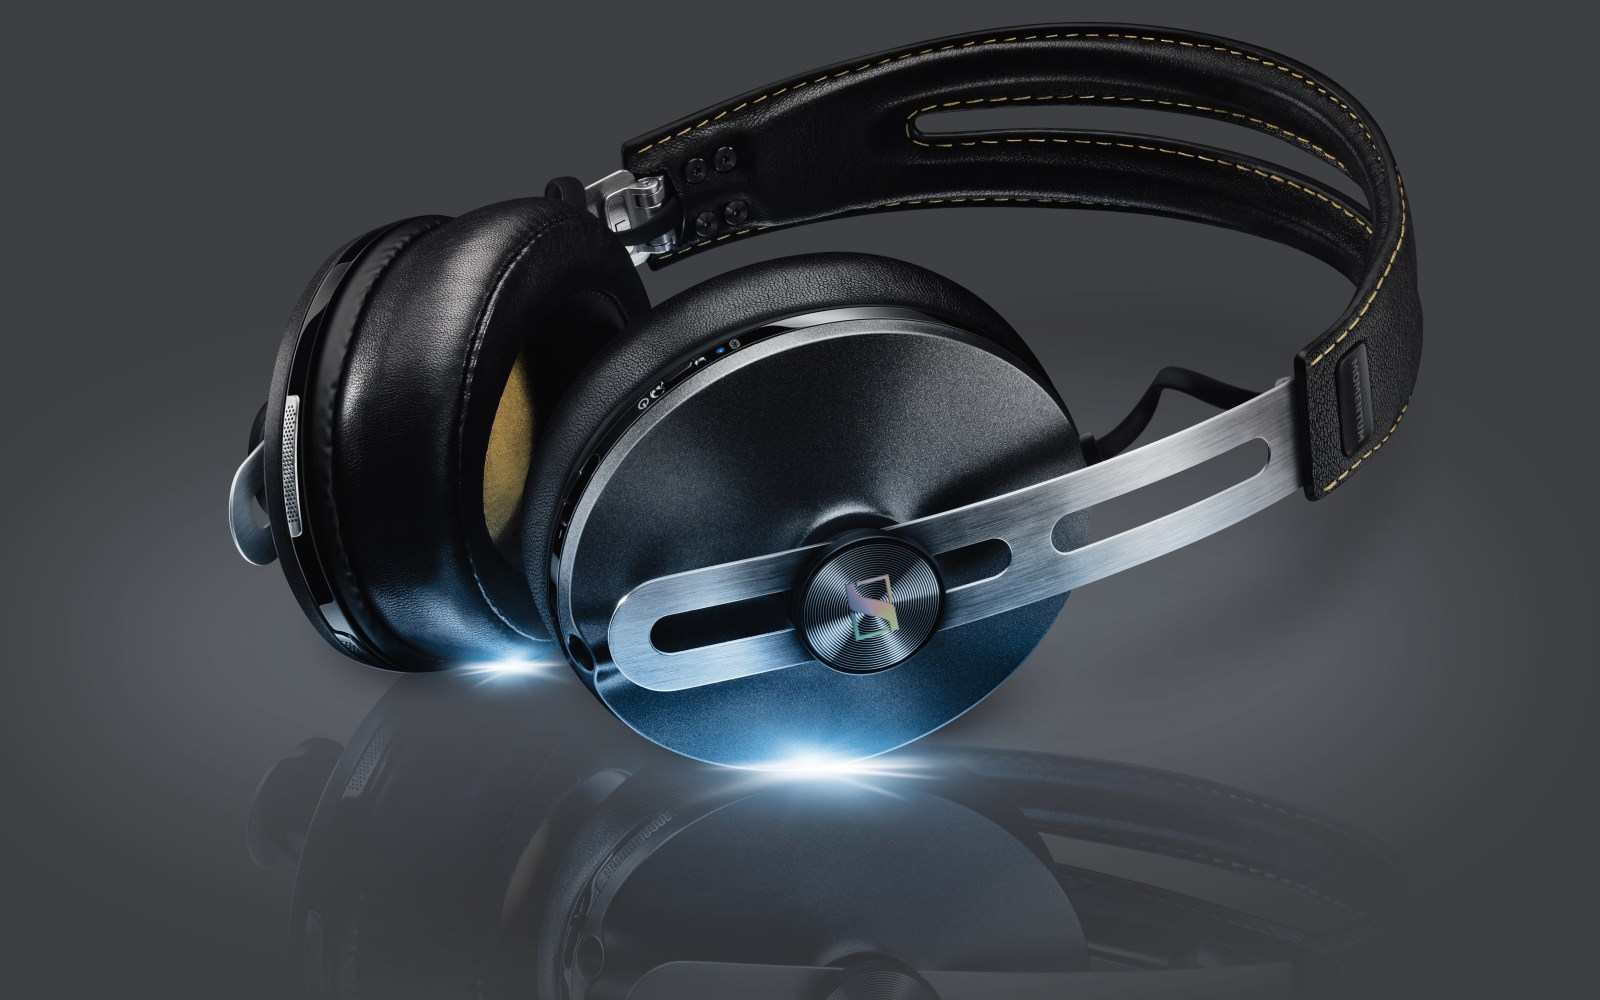 Sennheiser goes wireless with the latest version of its popular MOMENTUM headphones